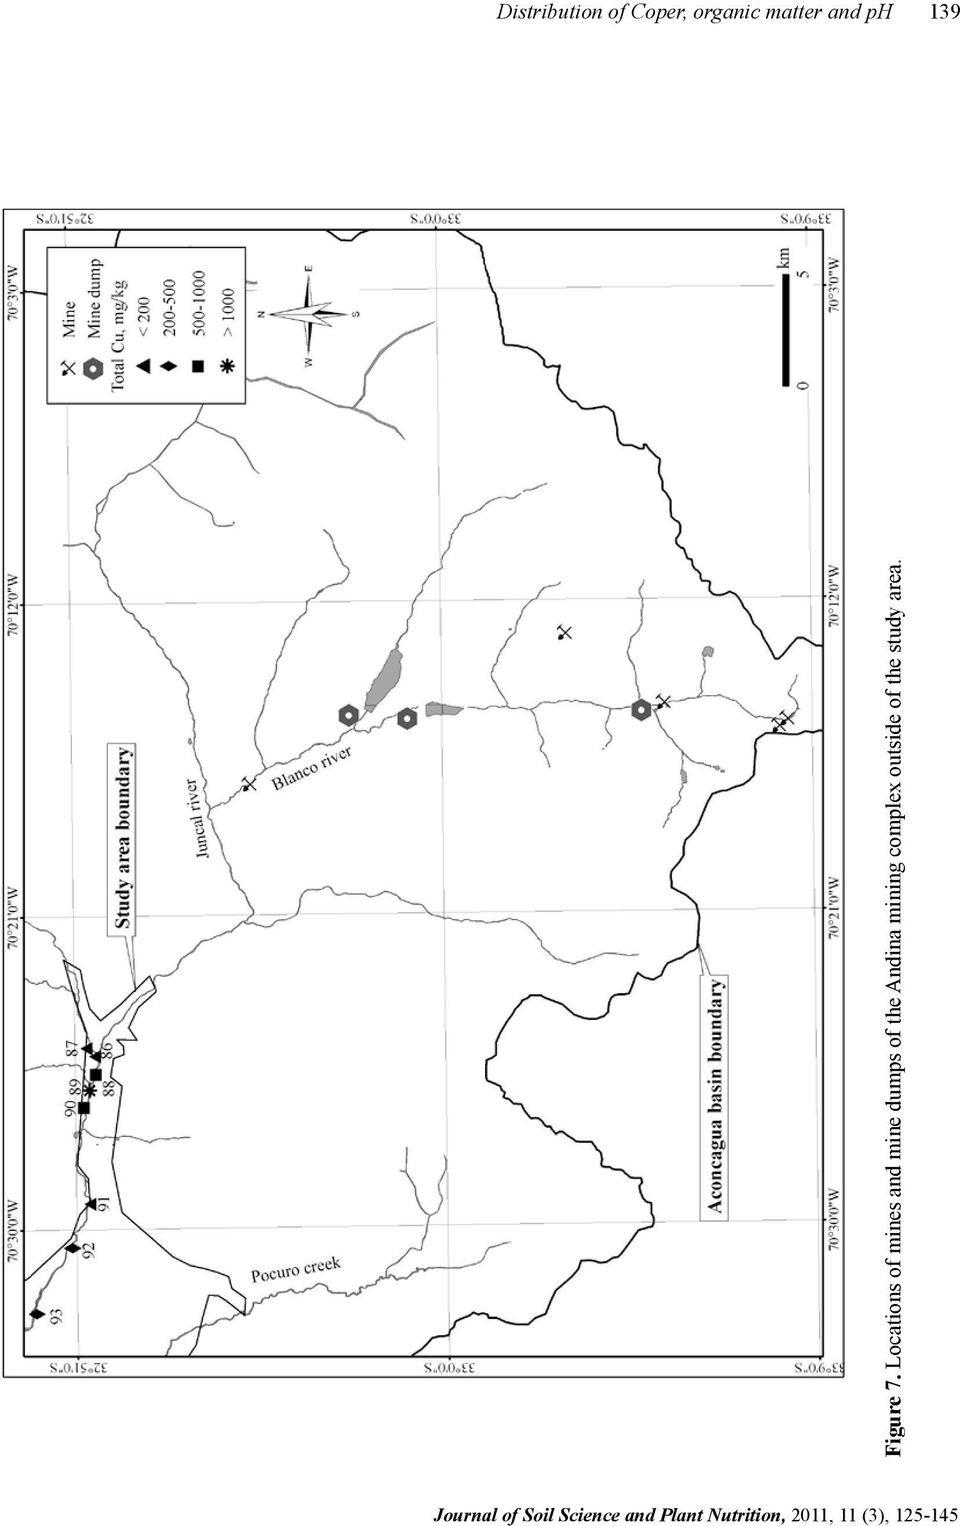 Locations of mines and mine dumps of